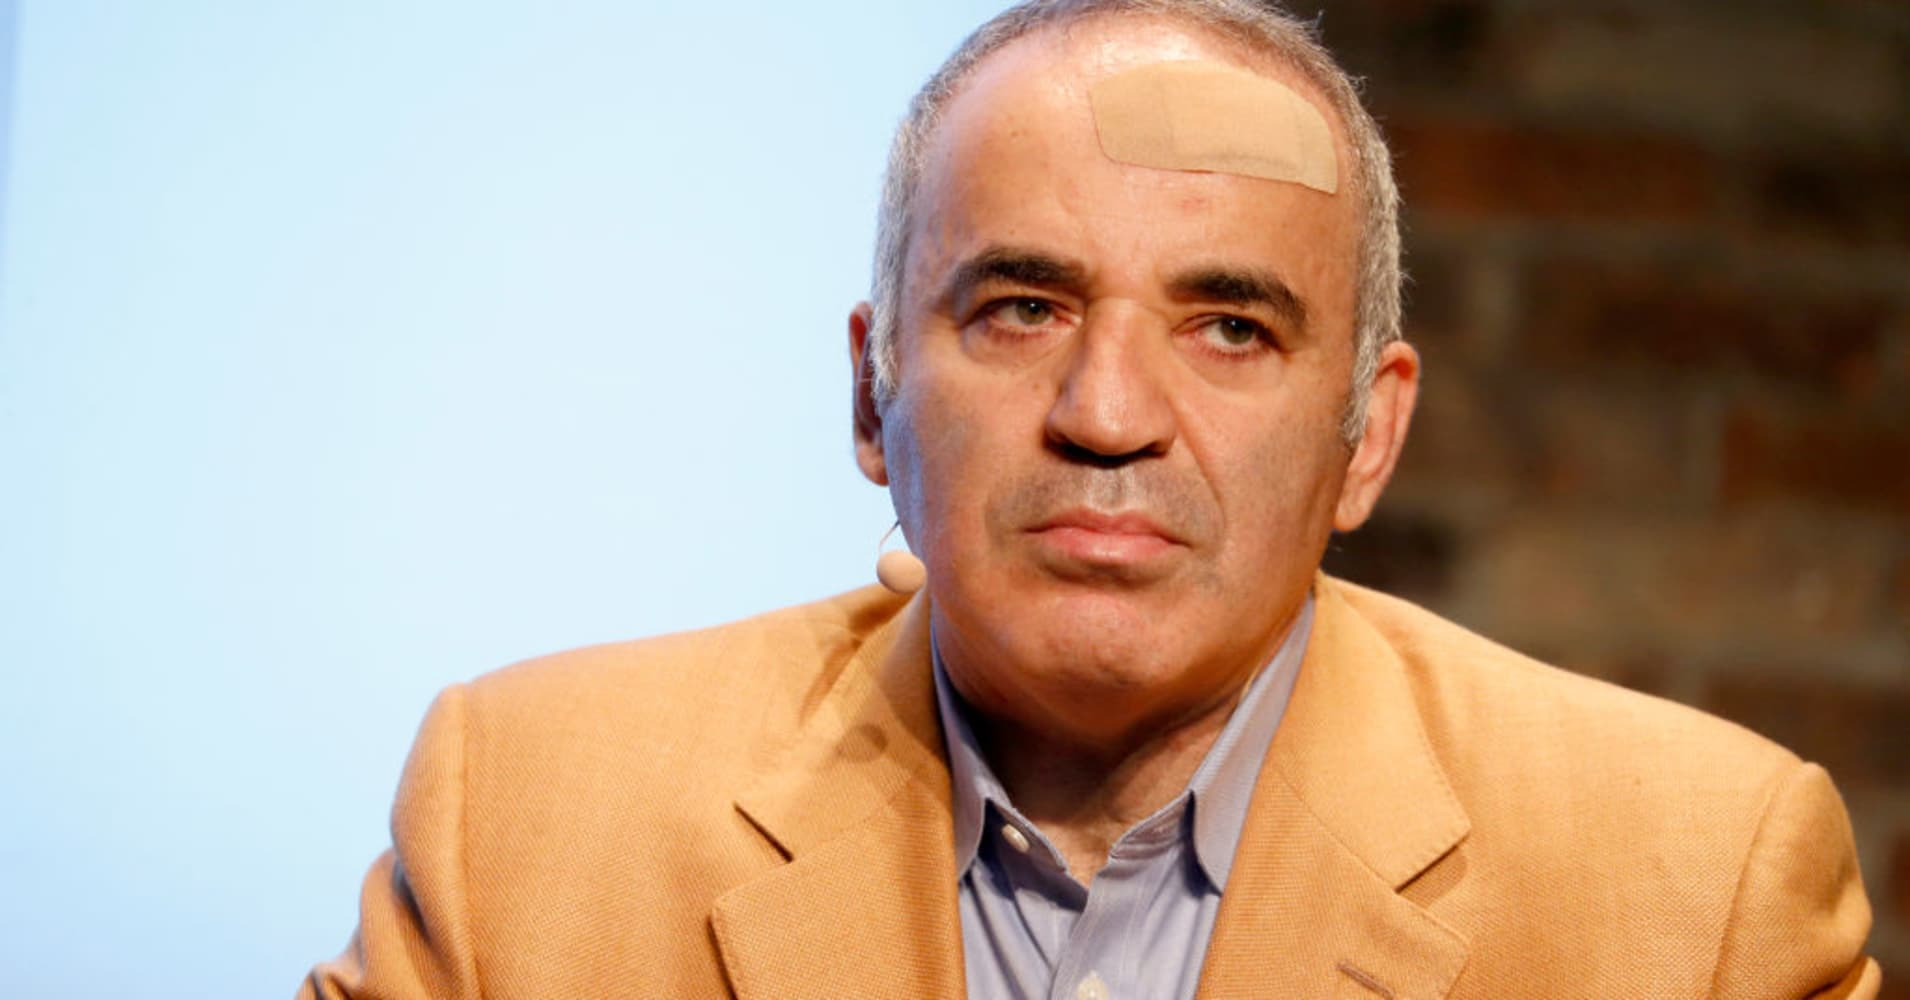 'I told you so,' chess legend Garry Kasparov says on Russian interference in the US election